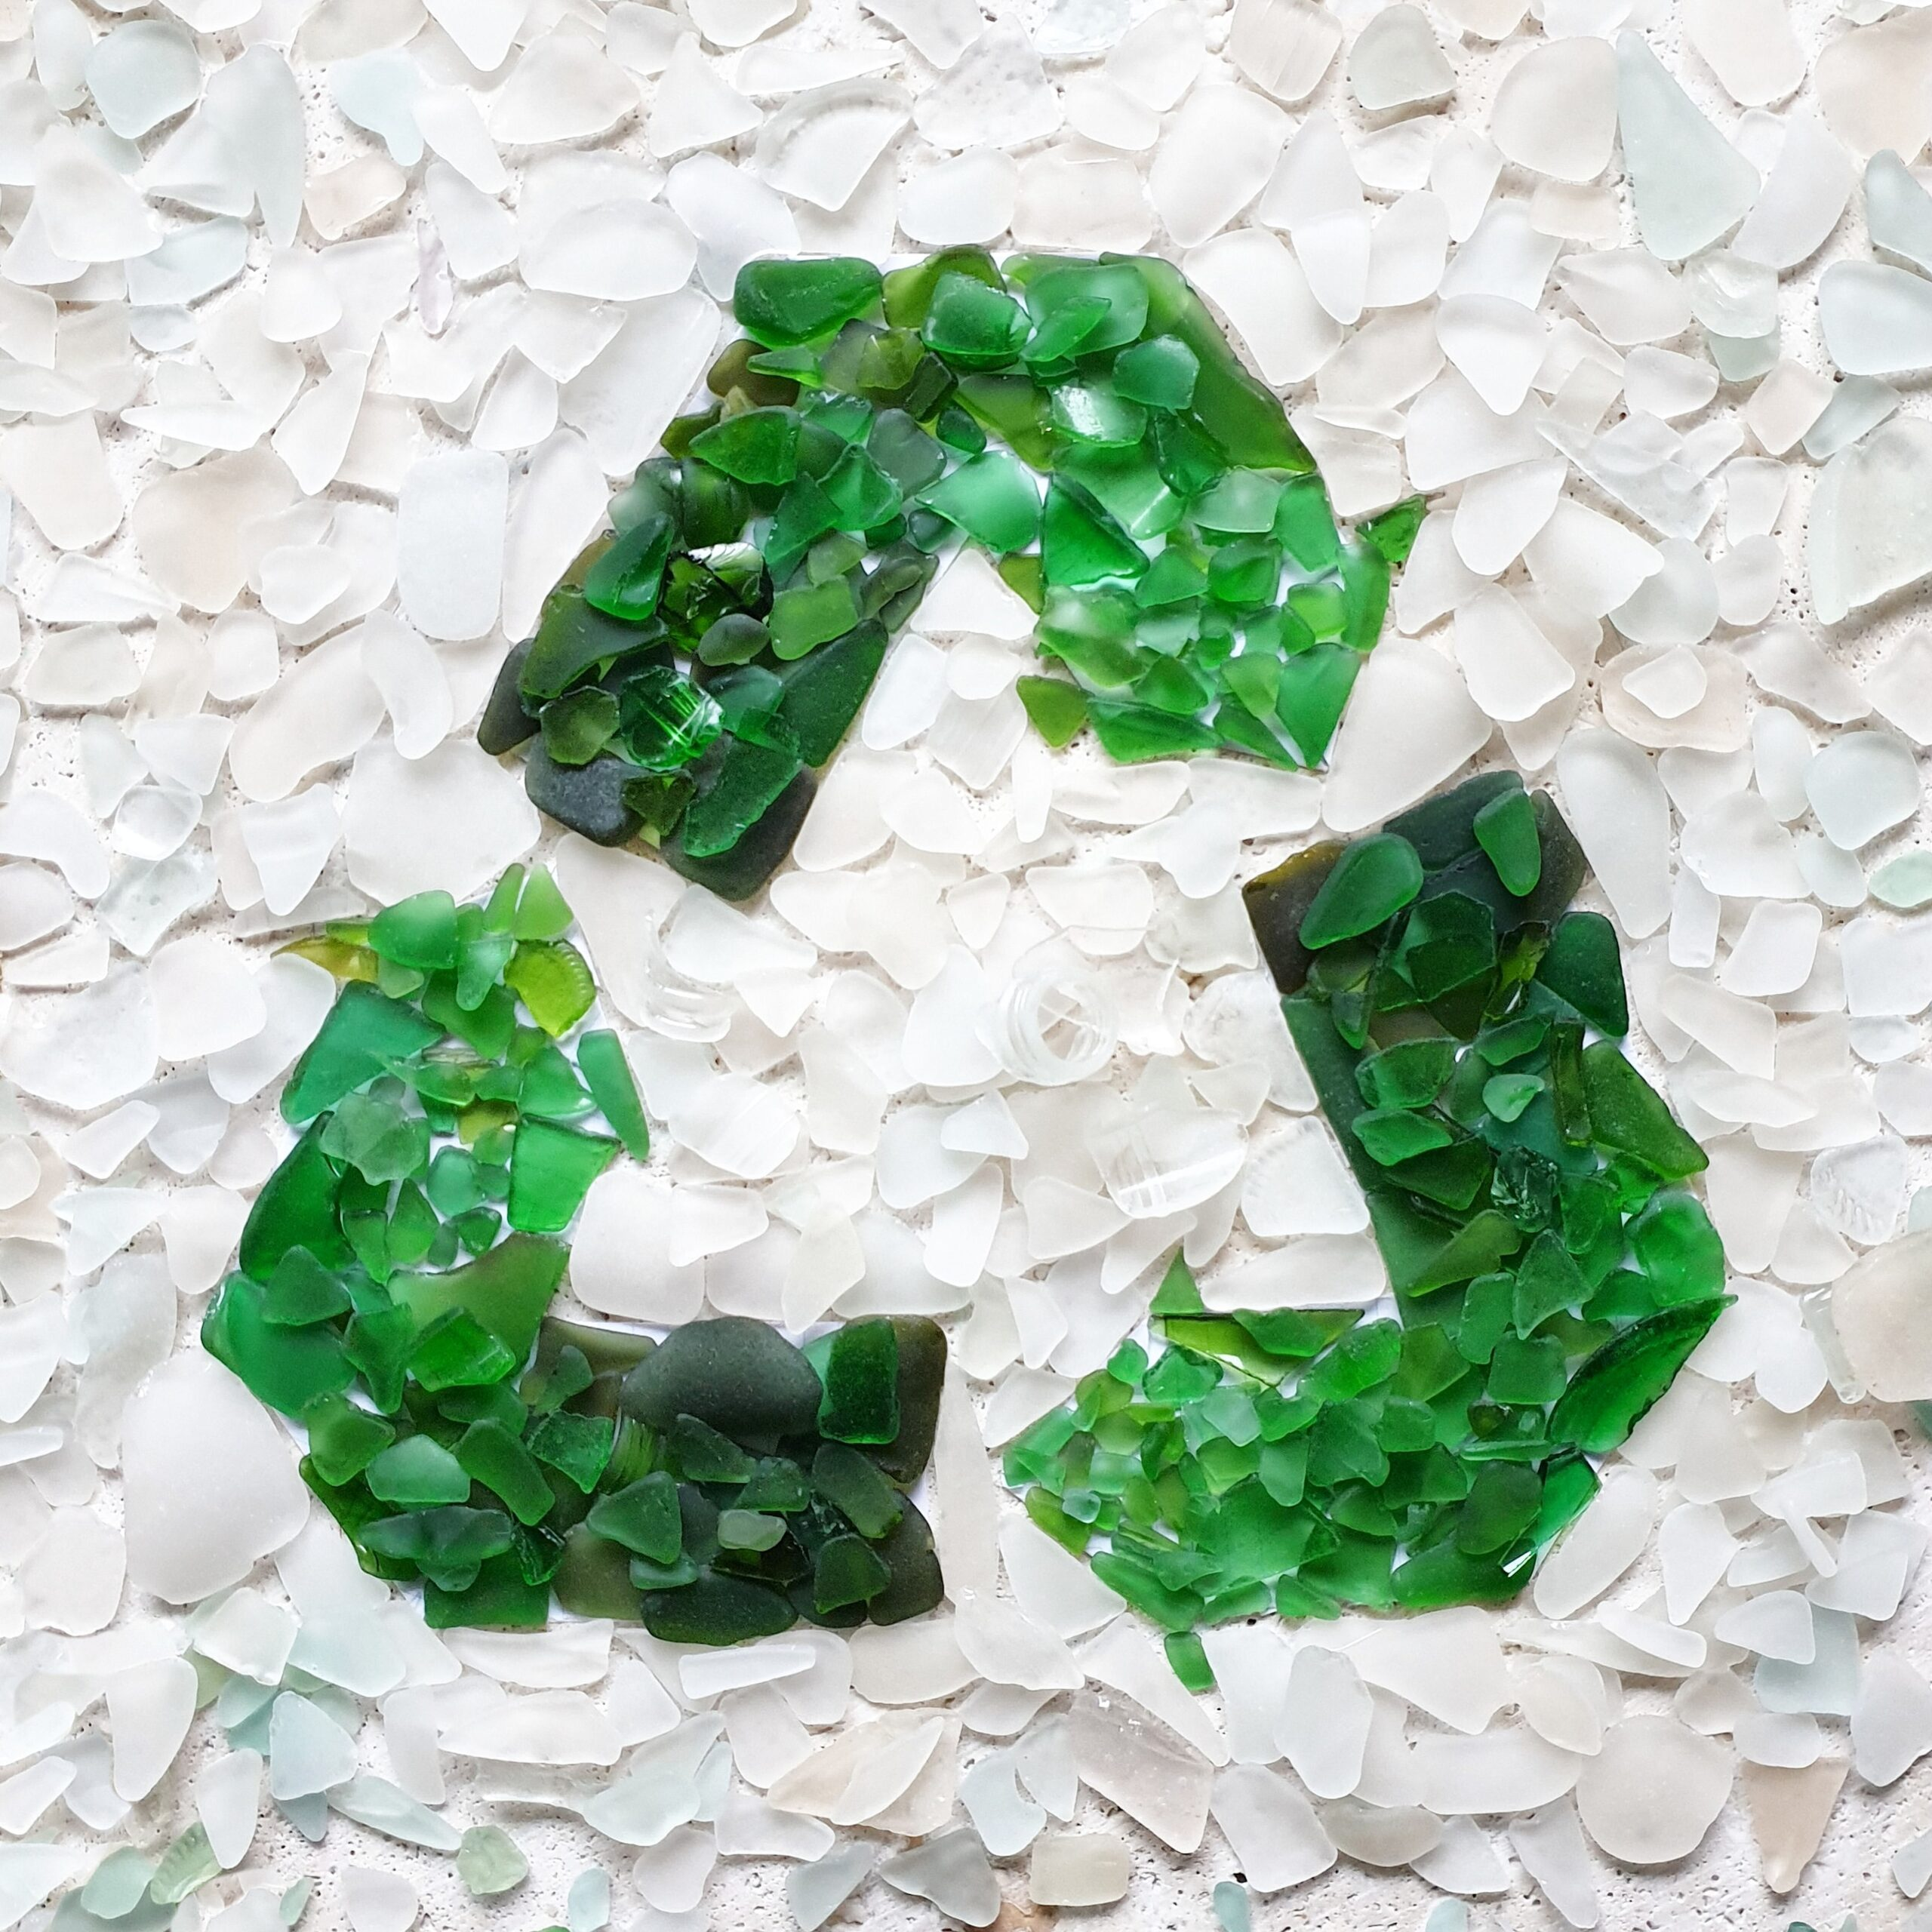 recycle-symbol-made-from-broken-glass-collected-fr-YQ3MYDZ